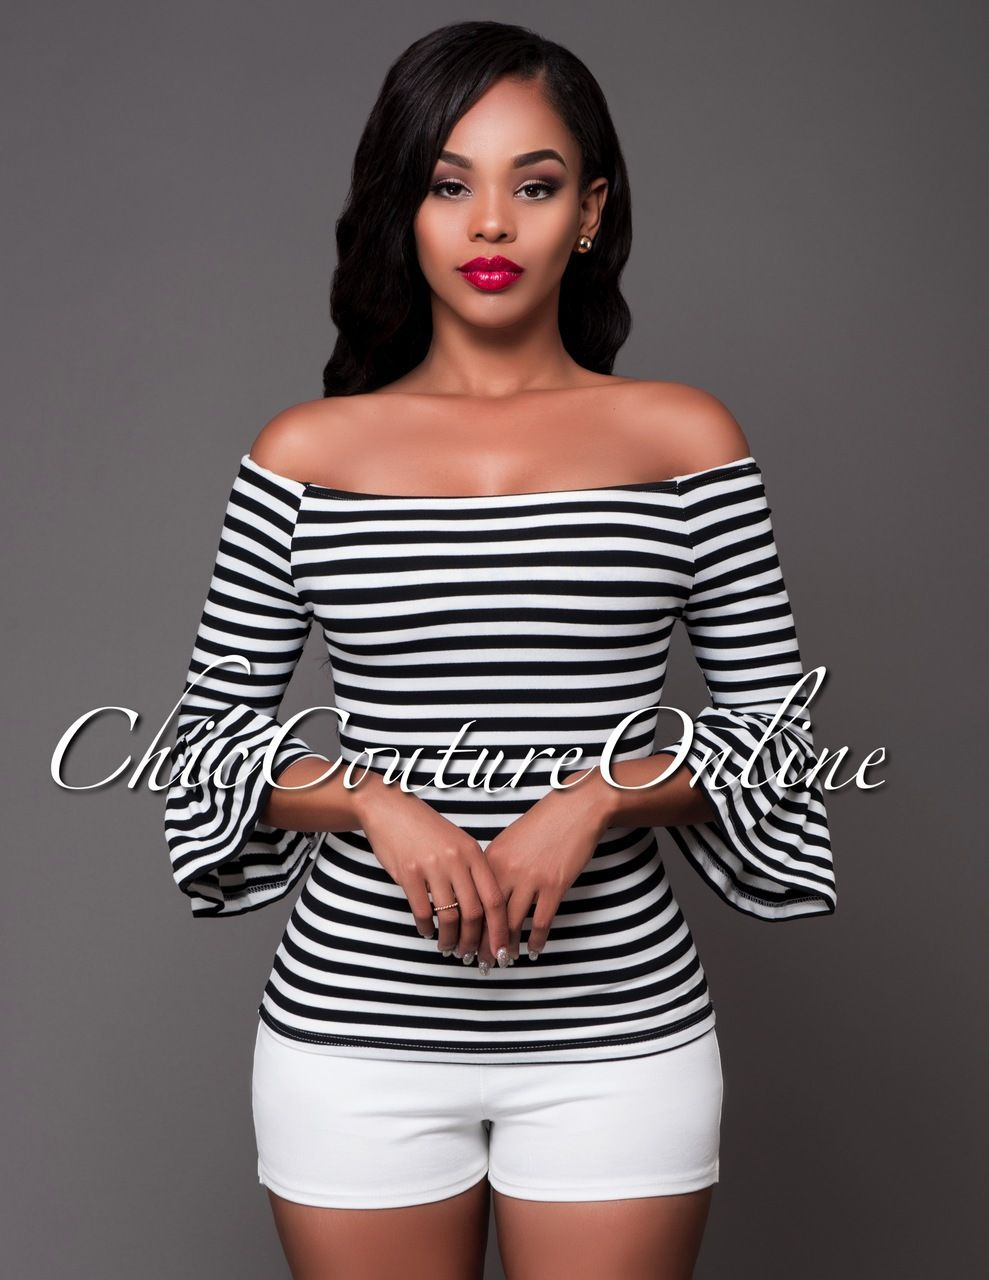 Chic Couture Online - Keona Black White Stripes Off-The-Shoulder Top.(http://www.chiccoutureonline.com/keona-black-white-stripes-off-the-shoulder-top/)